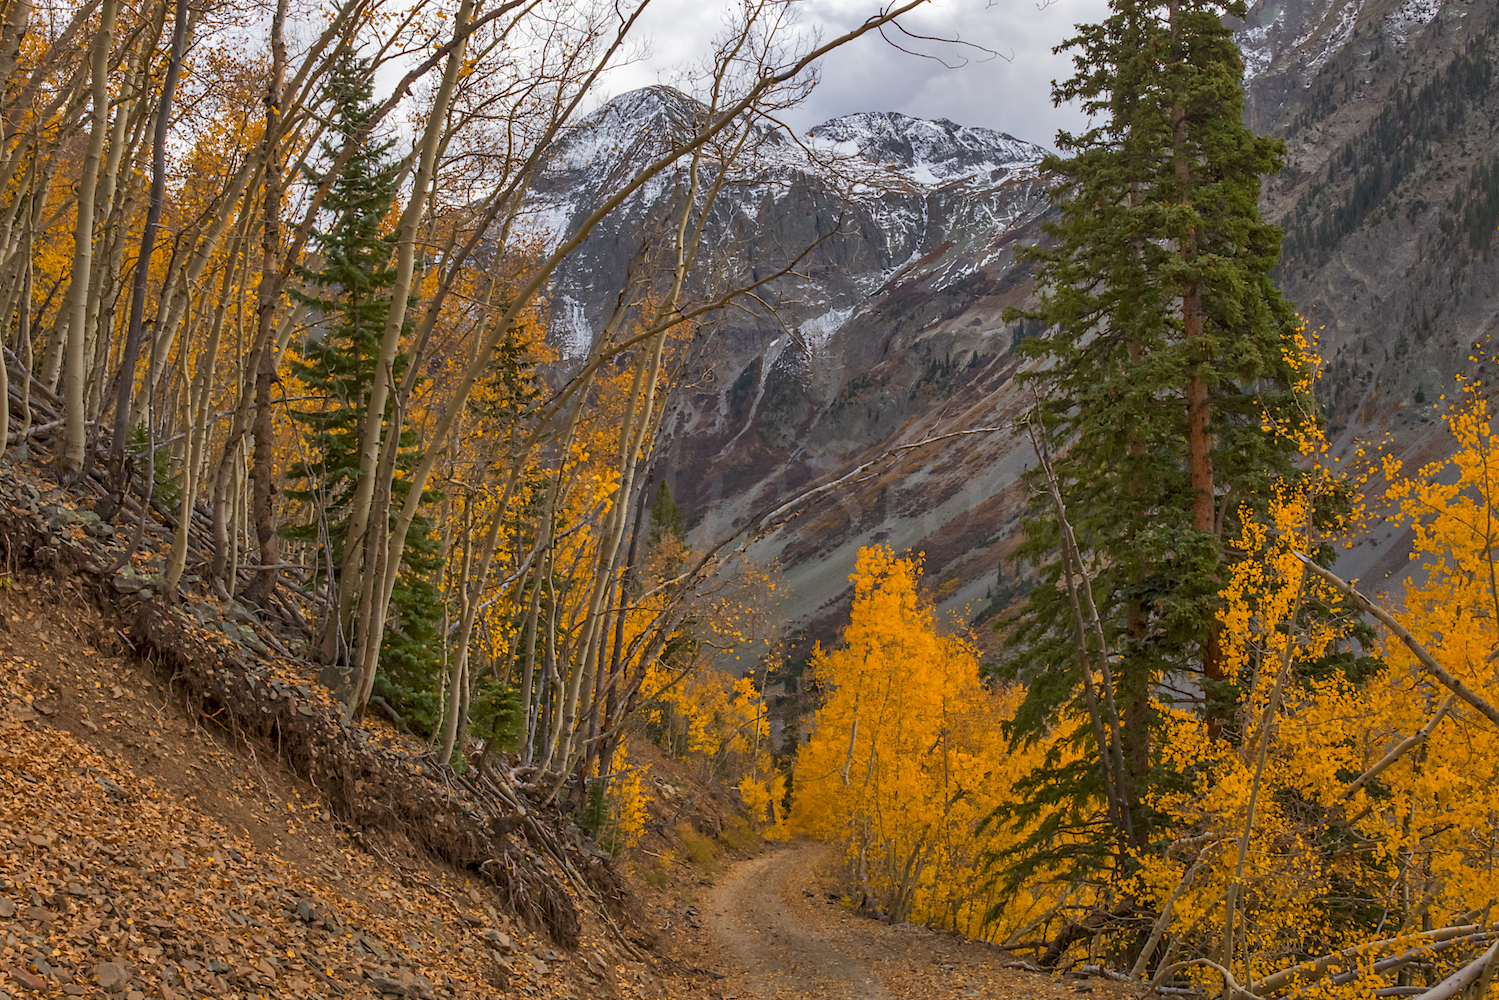 Road to Little Giant Basin, Image # 9008